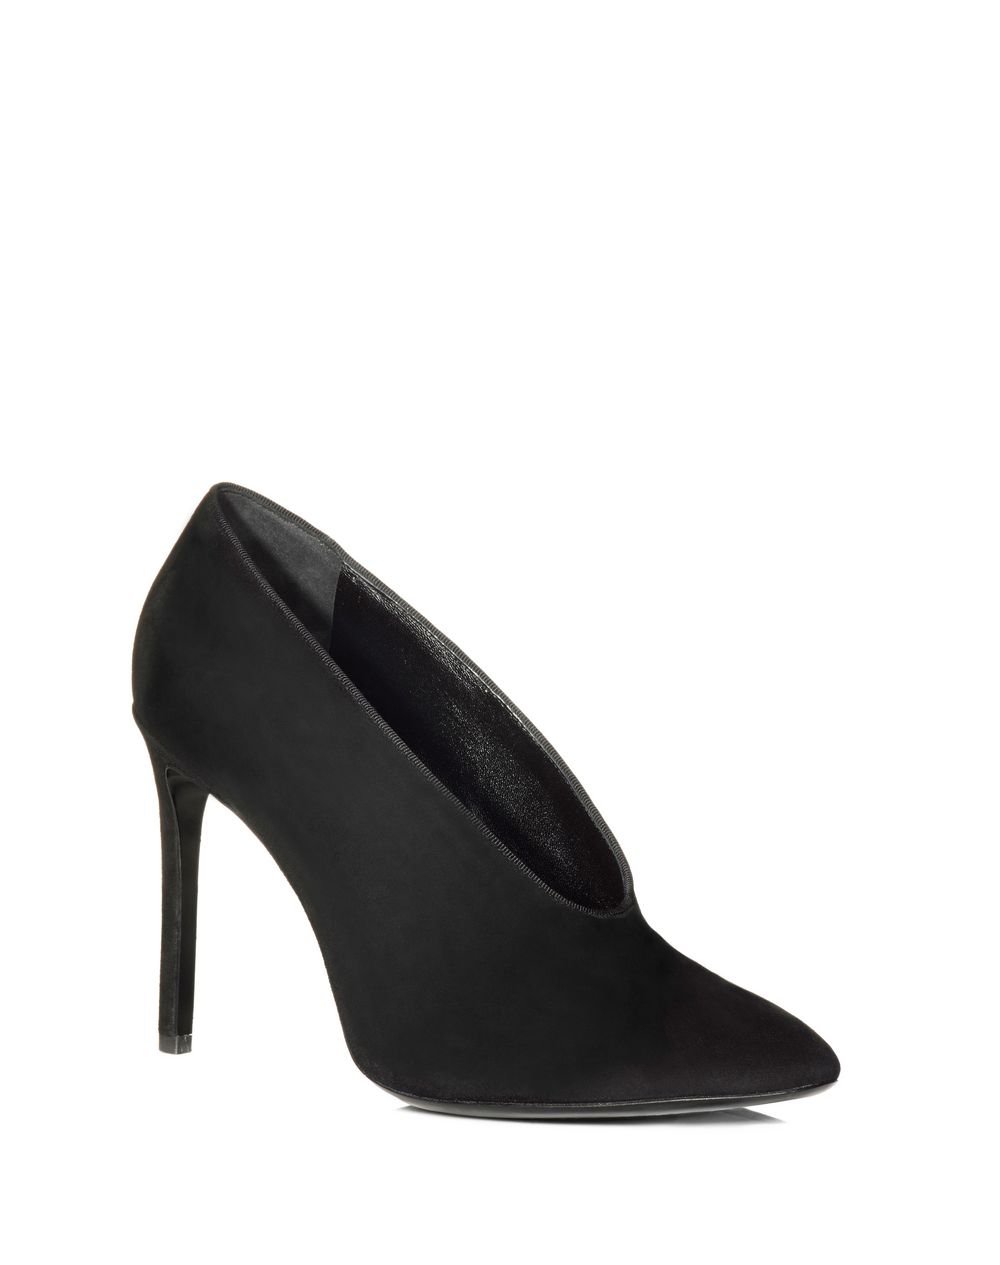 HIGH HEEL IN SUEDE - Lanvin